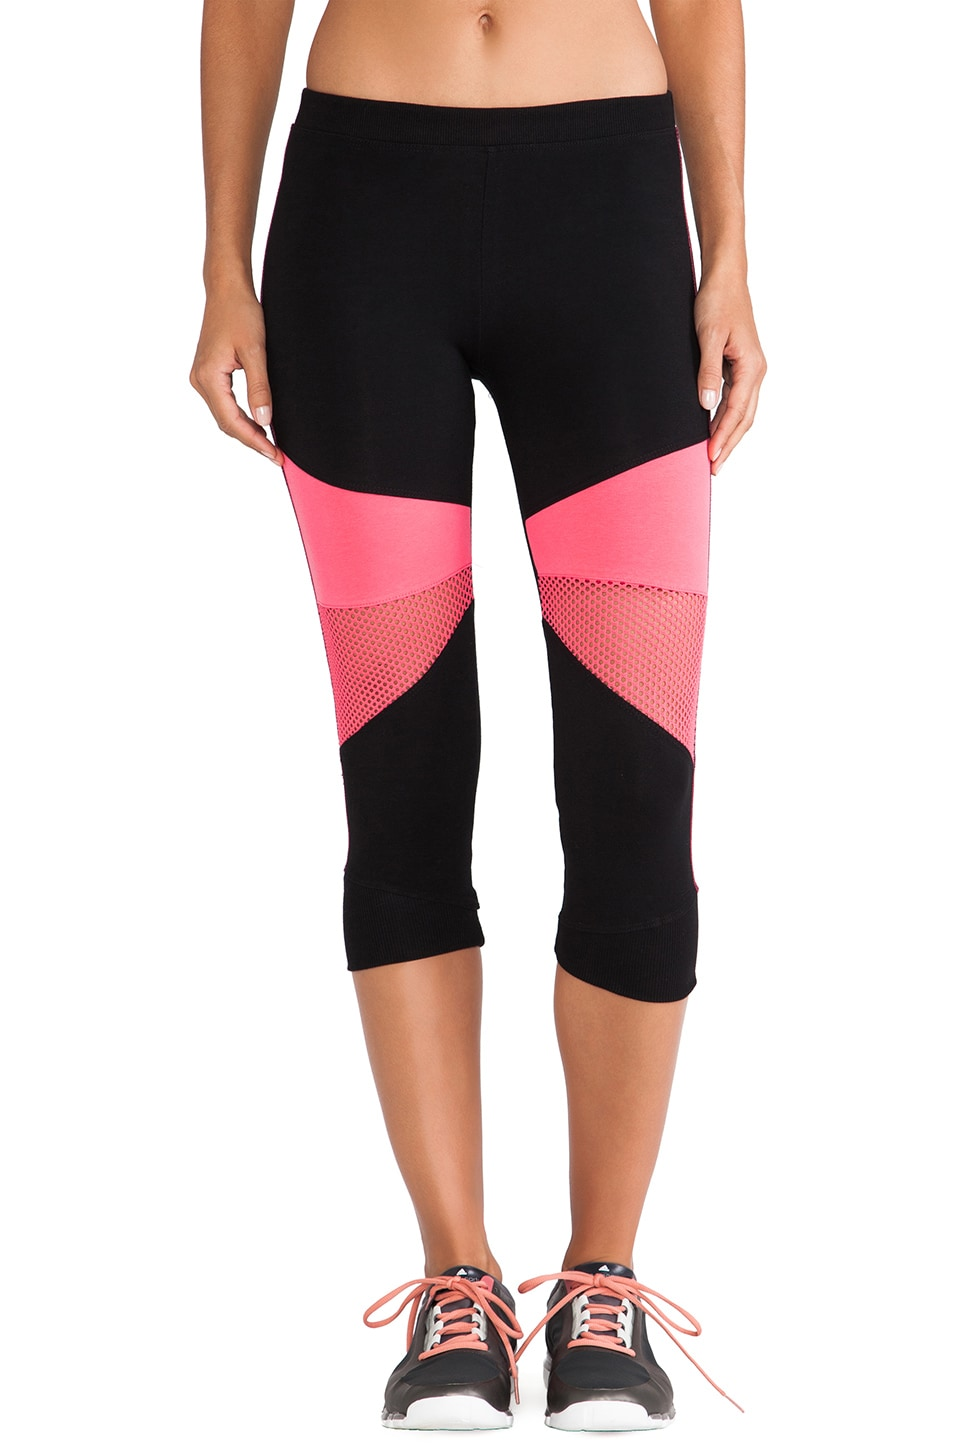 SOLOW Crop Mesh Legging in Black & Electric